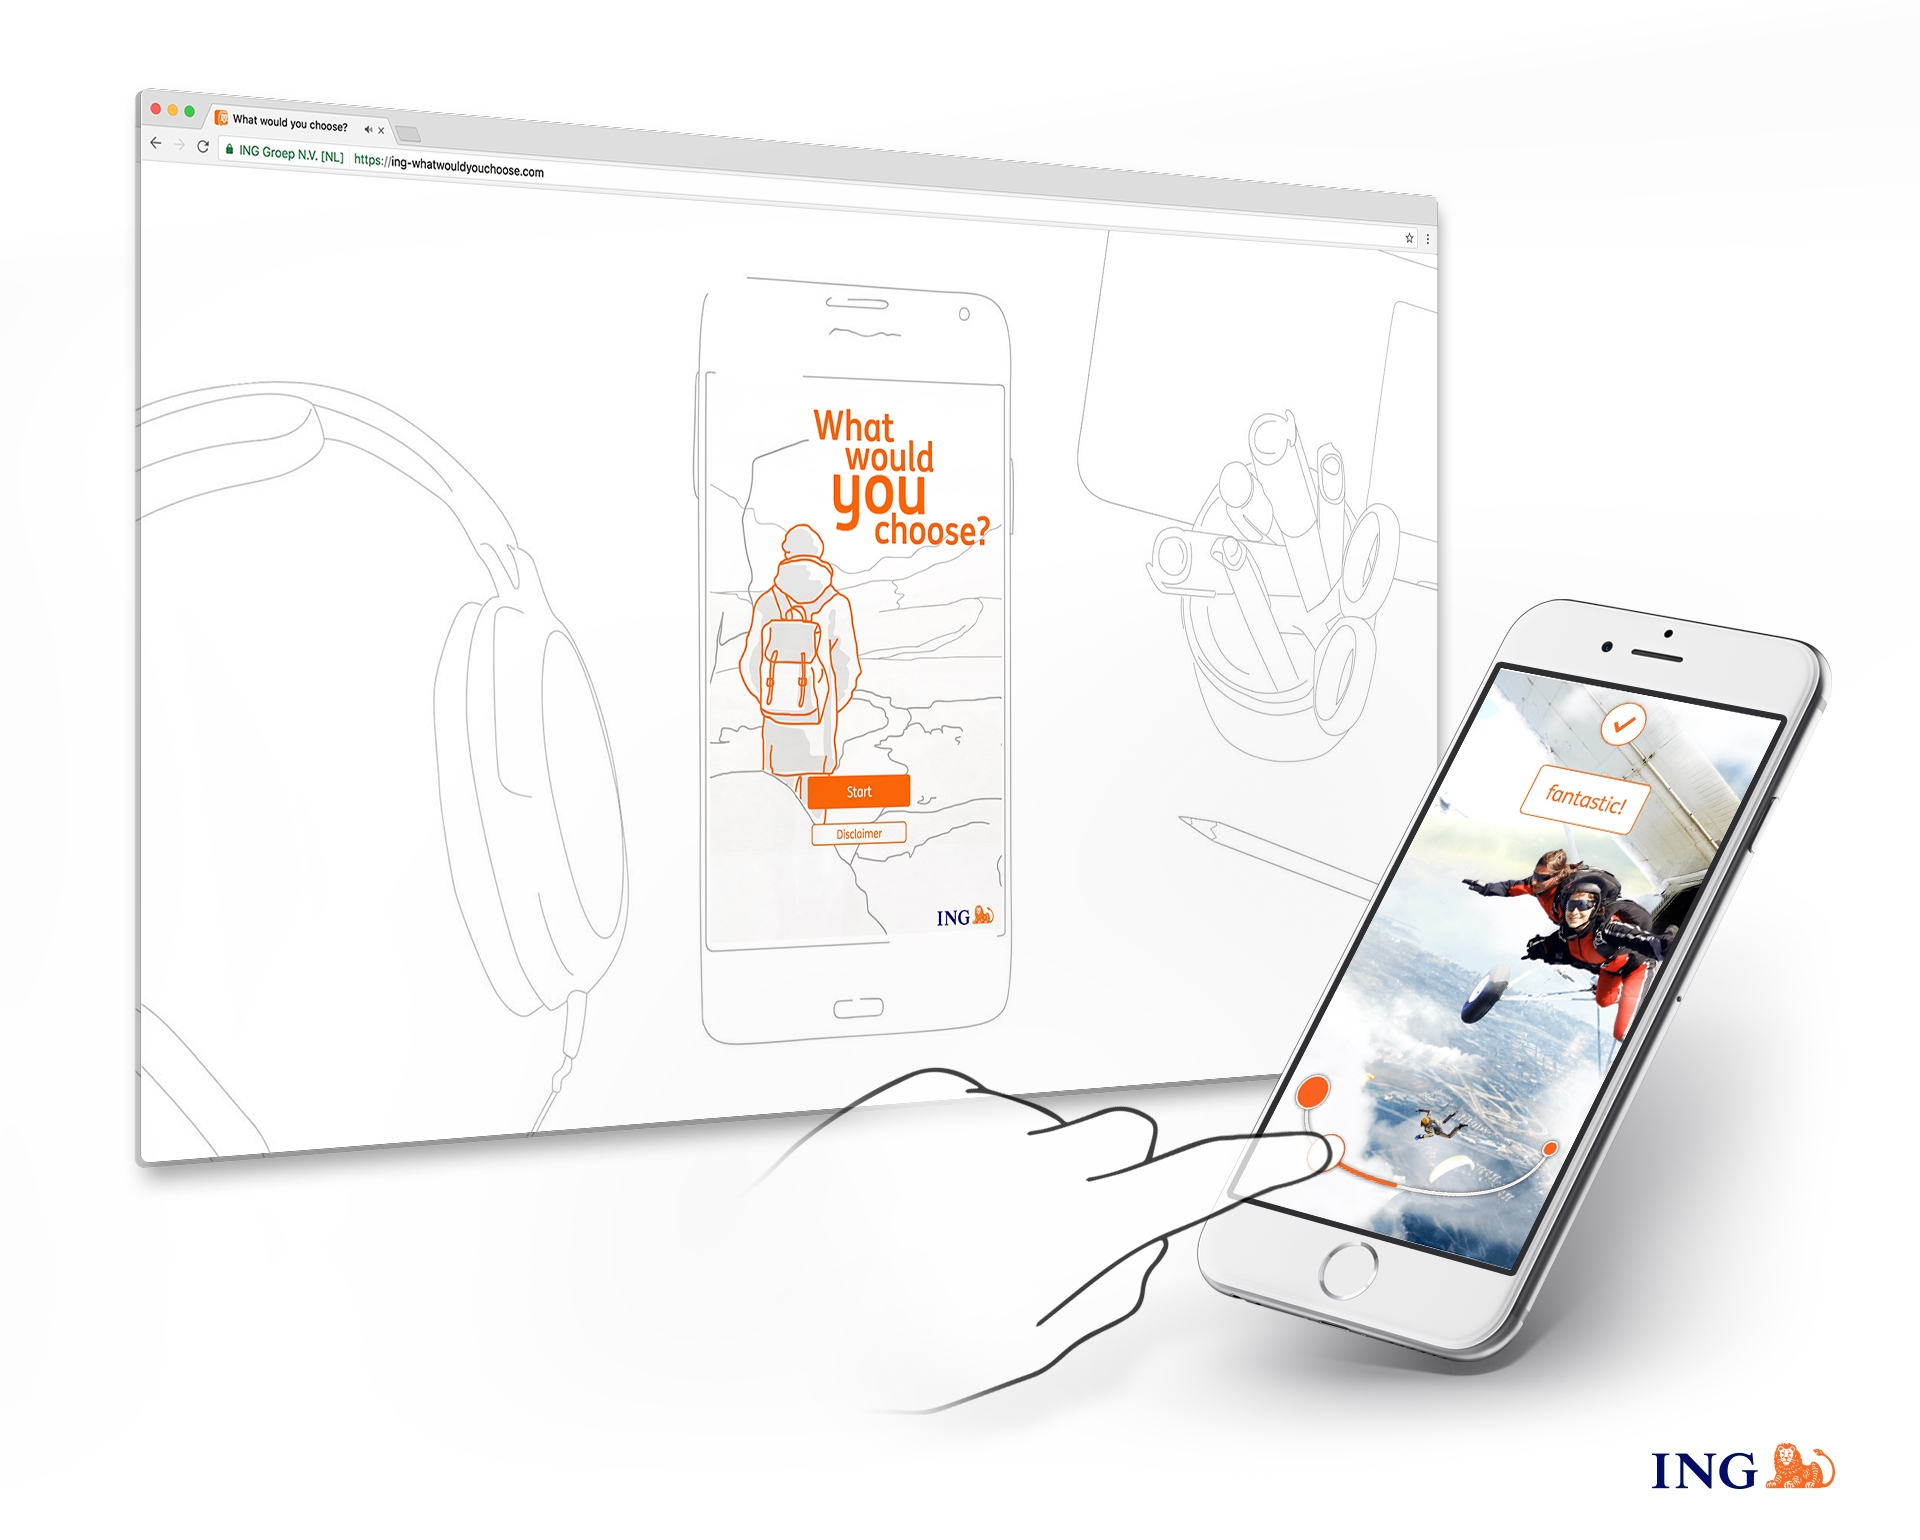 ING what would you choose mockup showing the game in a browser screen and on a phone